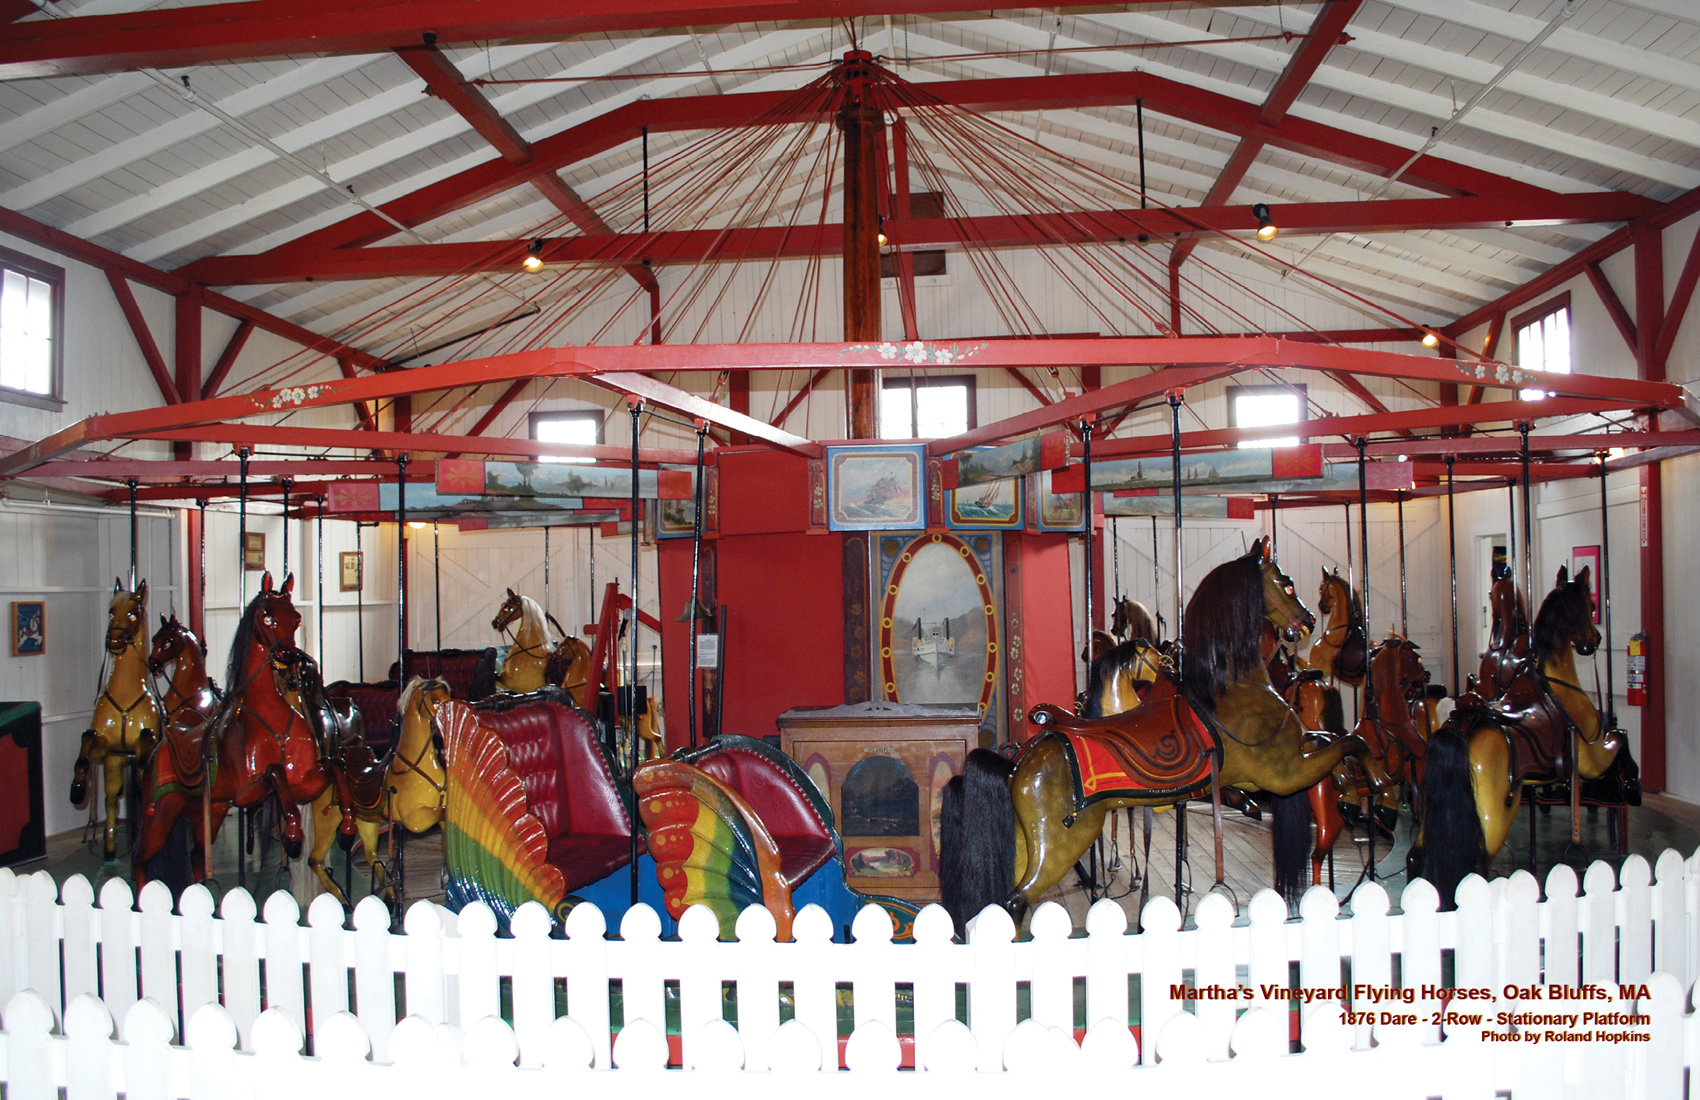 1876-Dare-carousel-Marthas-Vineyard-CNT-center-May-12